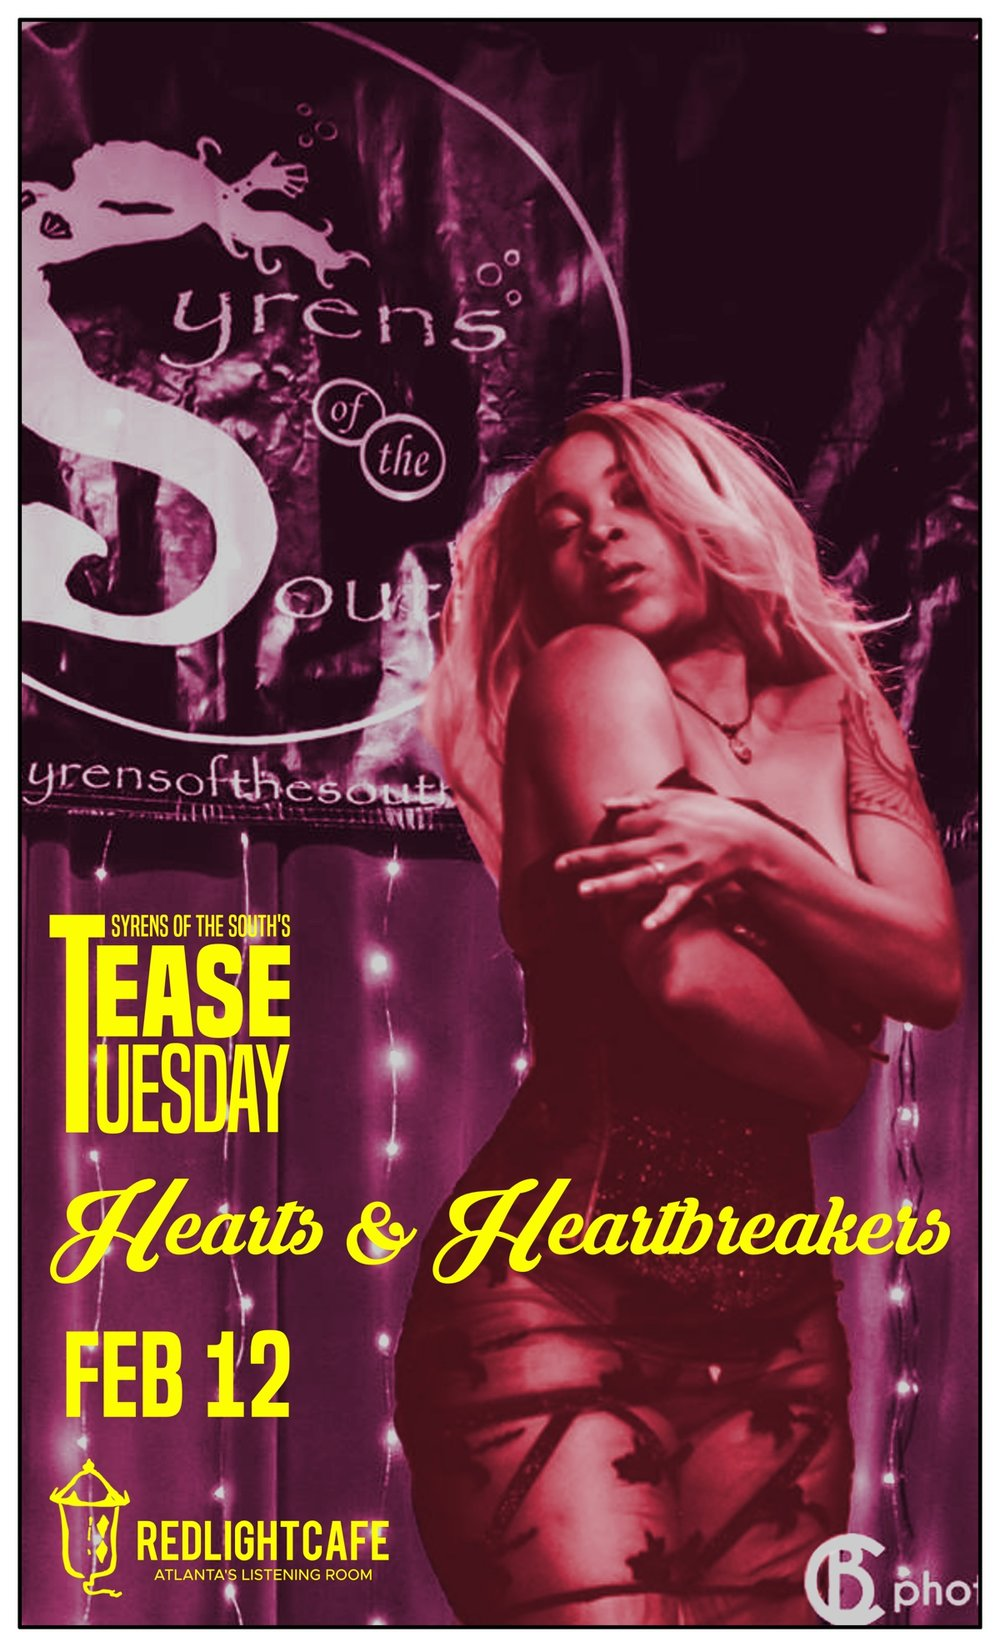 Tease Tuesday Burlesque: Hearts & Heartbreakers — February 12, 2019 — Red Light Café, Atlanta, GA